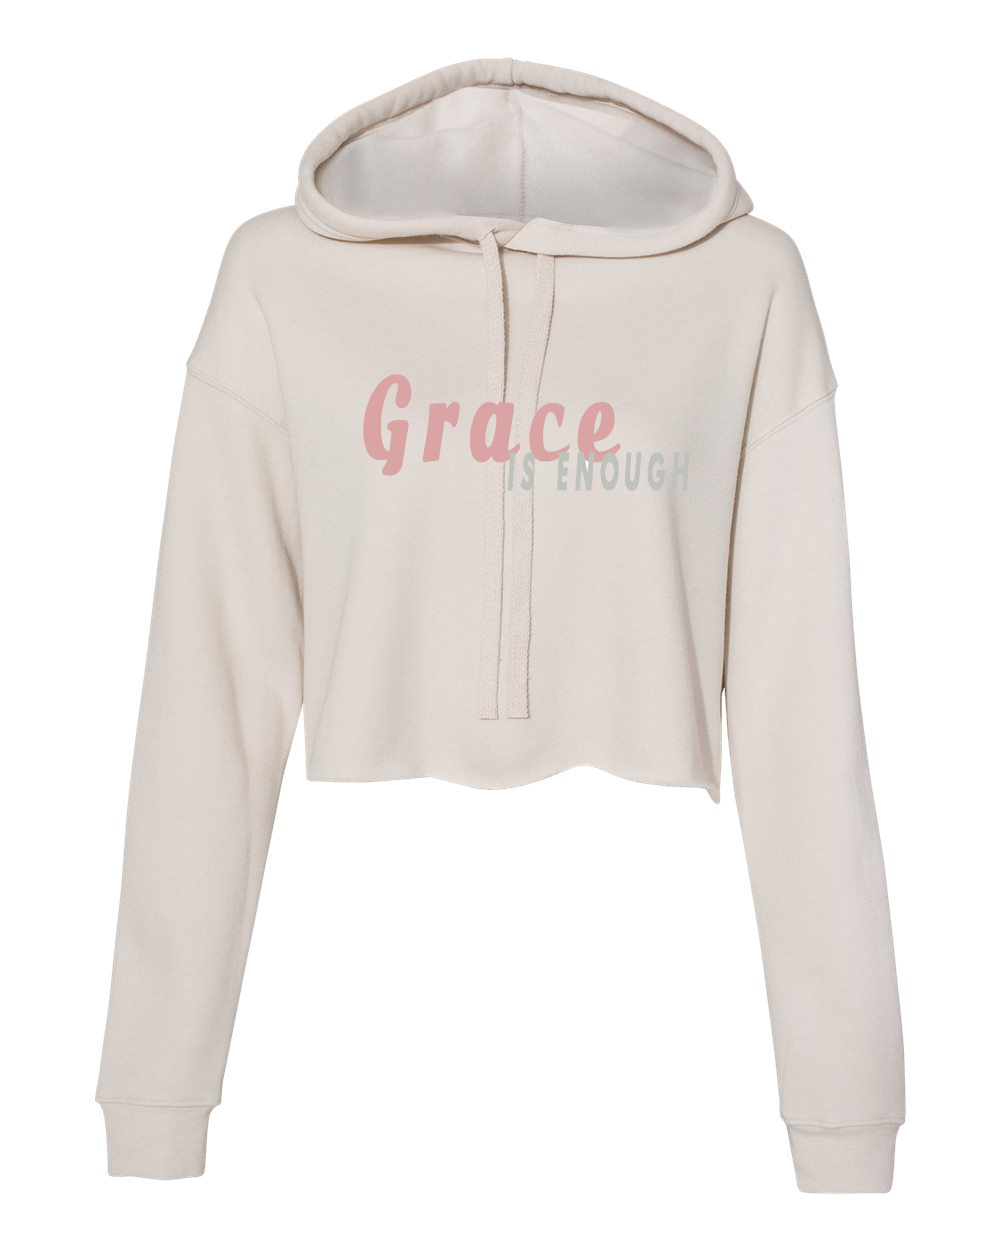 Grace is Enough Cream Hoodie